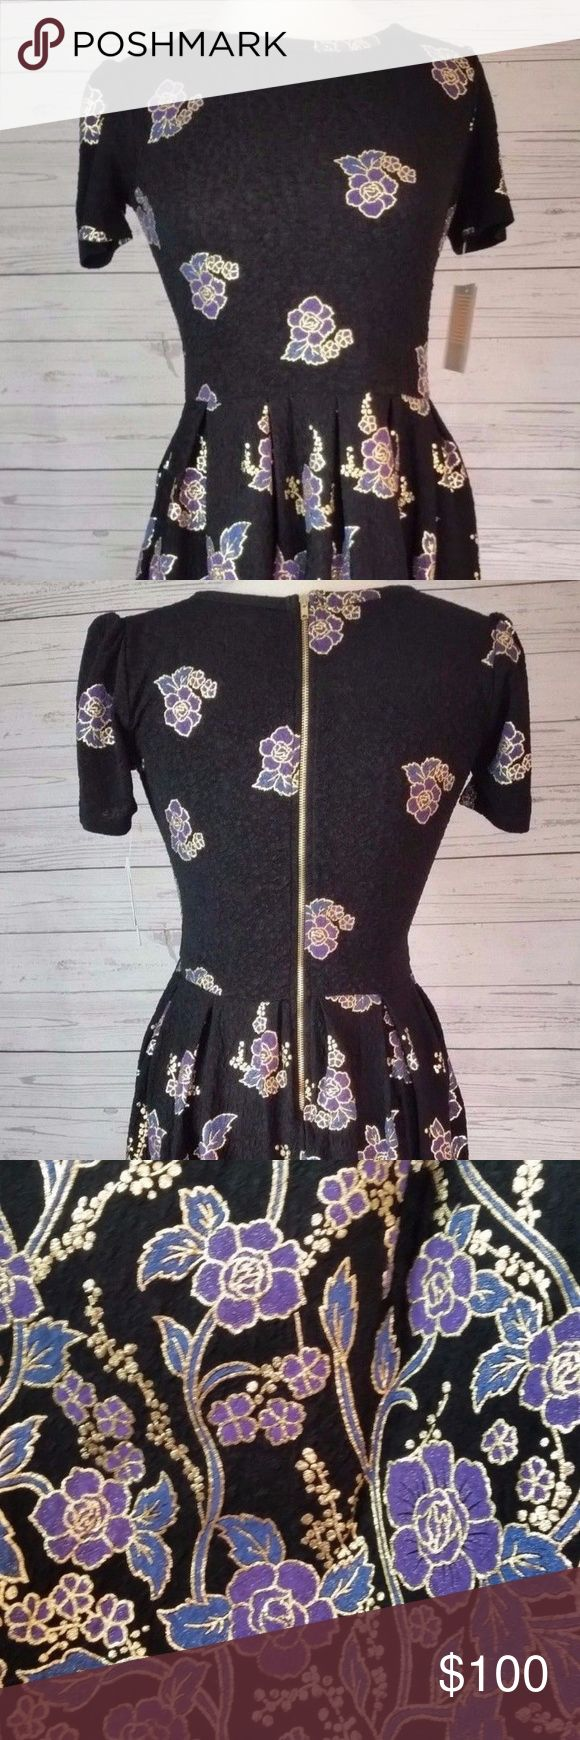 LuLaRoe Elegant Collection Amelia This is the newly released 2017 Elegant Collection Amelia.  This is absolutely stunning in person! This beauty will carry over and can be worn for Valentine's Day, Easter, upcoming weddings, etc.! I am not a LulaRoe Consultant. I do not get my clothing items at cost. Size: XL  Print/Color: Black background, with subtle cheetah-like design. Purple, blue, gold floral design. New with tags. LuLaRoe Dresses